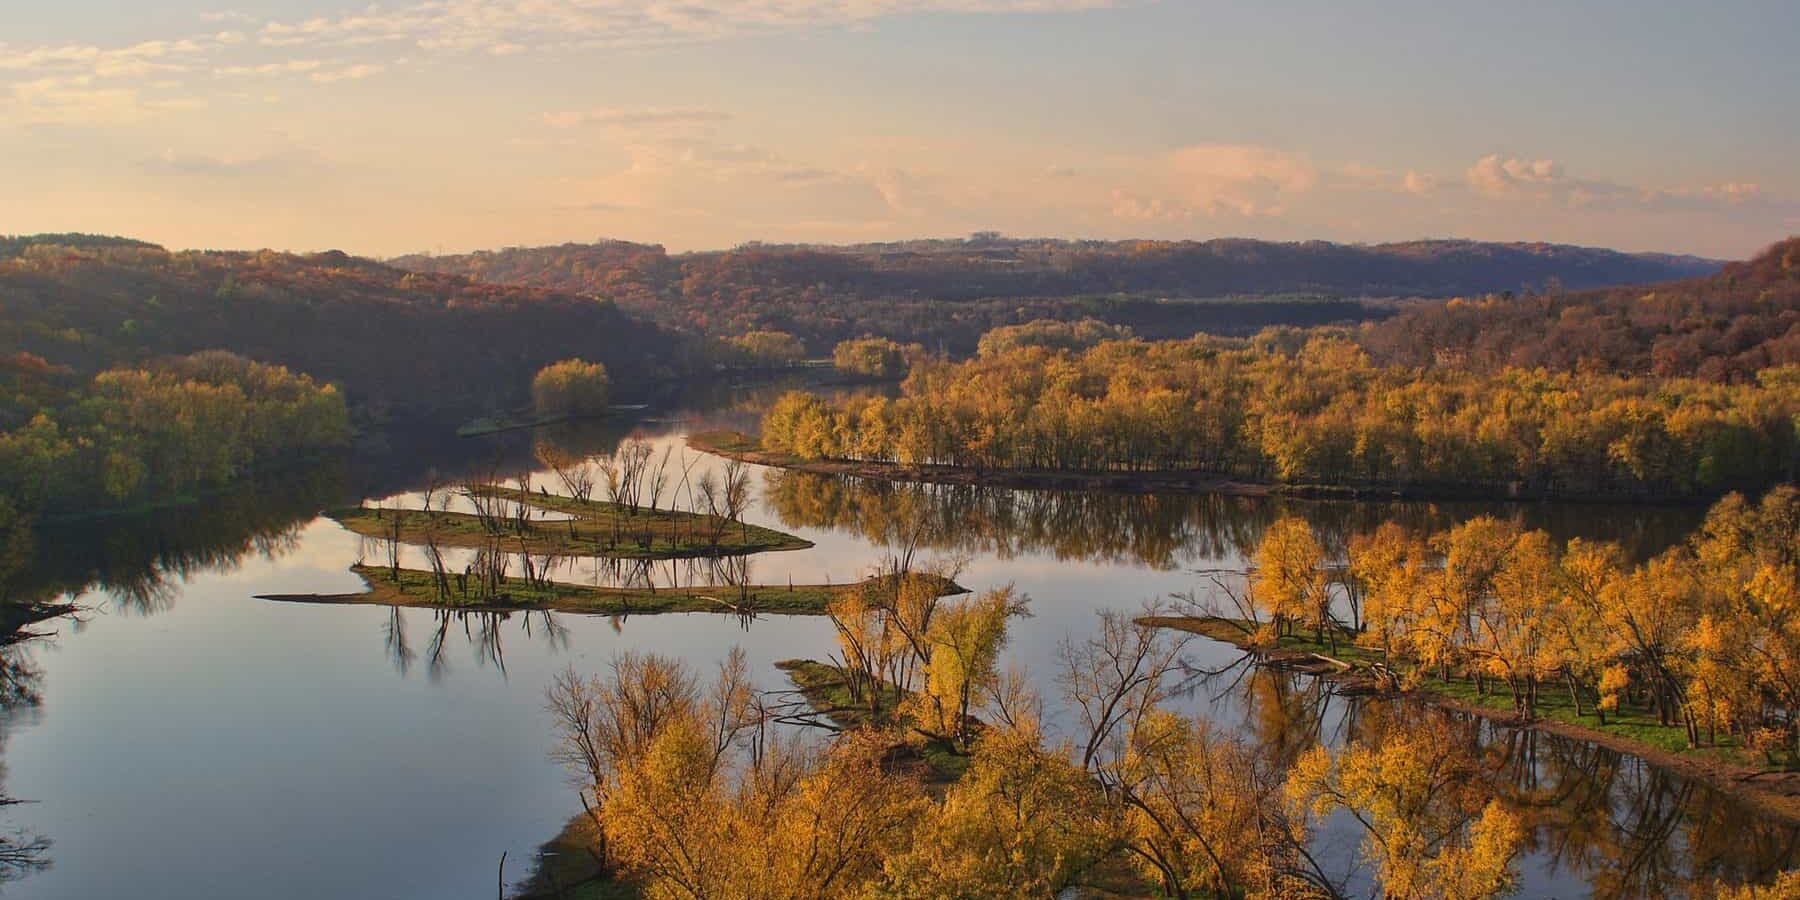 River flowing around islands on a calm autumn day with golden light over the trees.